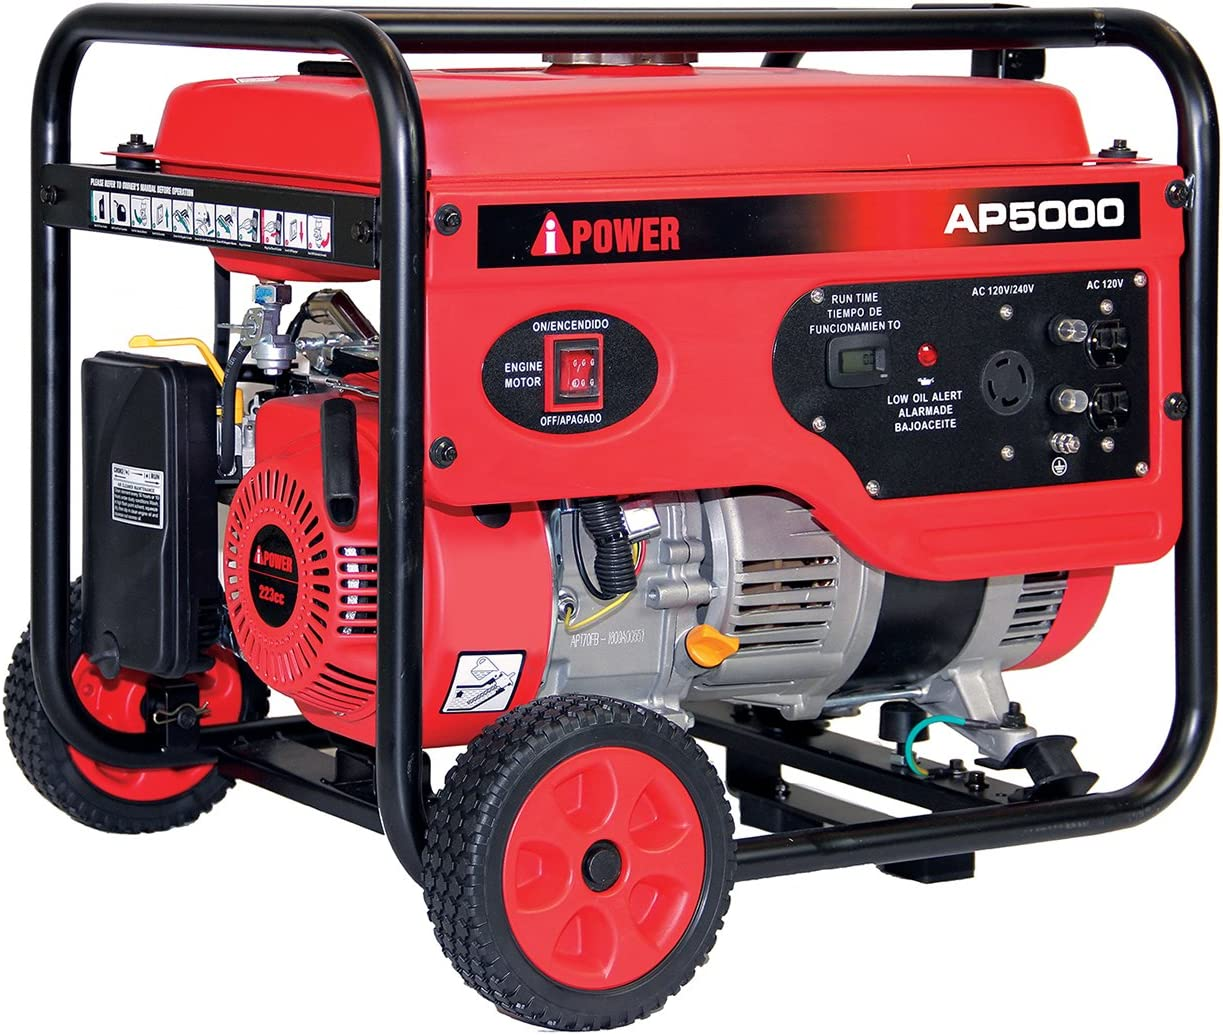 Best Home Generators For Power Outages (2021): Top 10 List 4